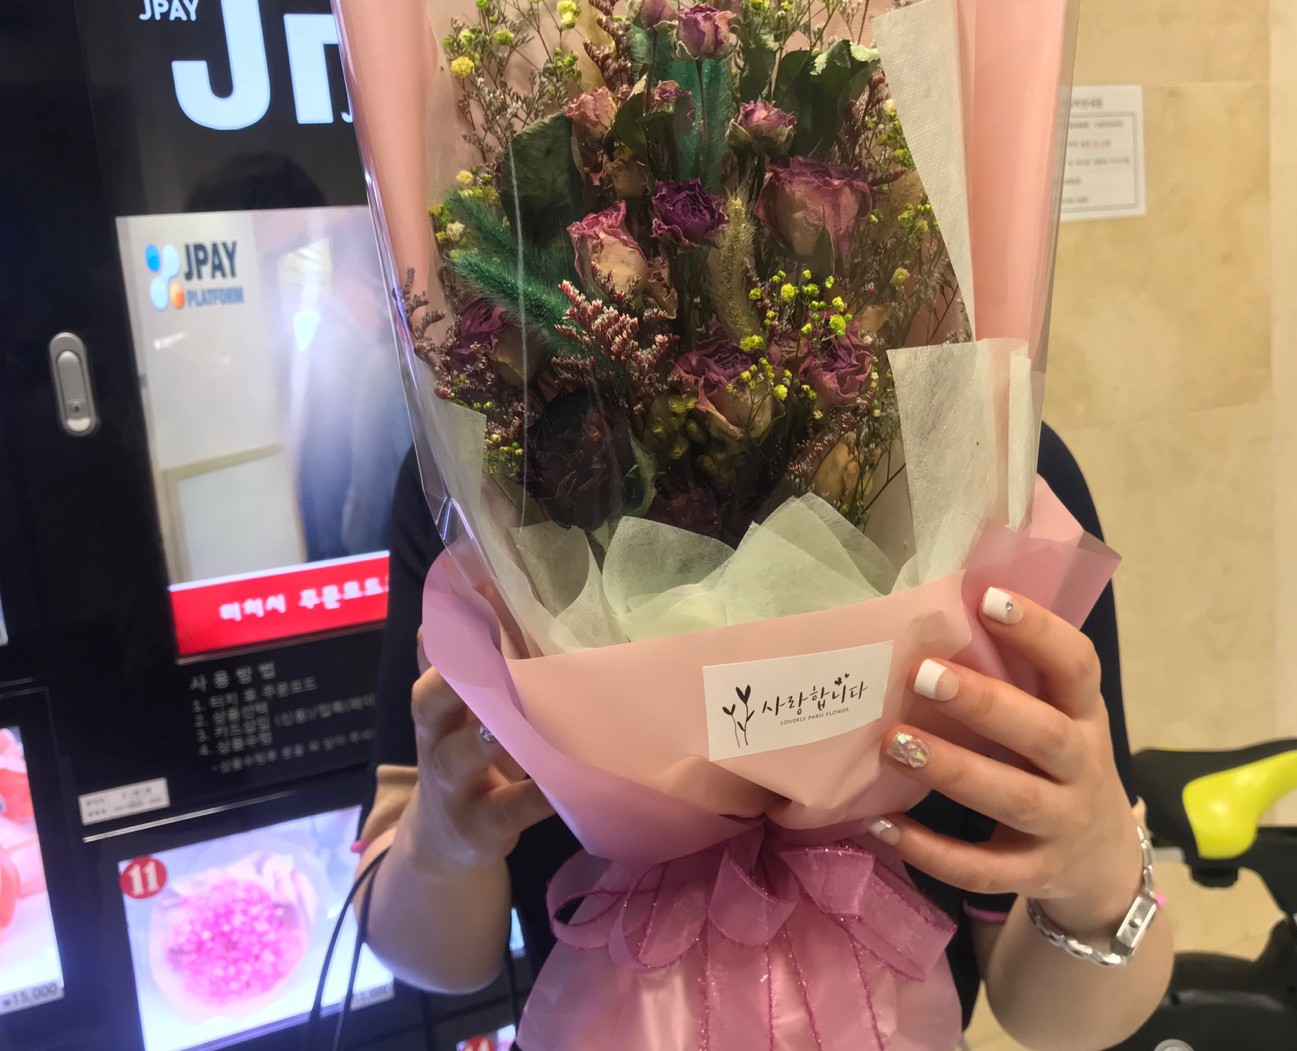 Paying with crypto buying flowers with jpay jpay platform as you can see i used the jpay machine today to buy flowers for my girlfriend i dont usually give flowers often but seeing pretty flowers makes me feel mightylinksfo